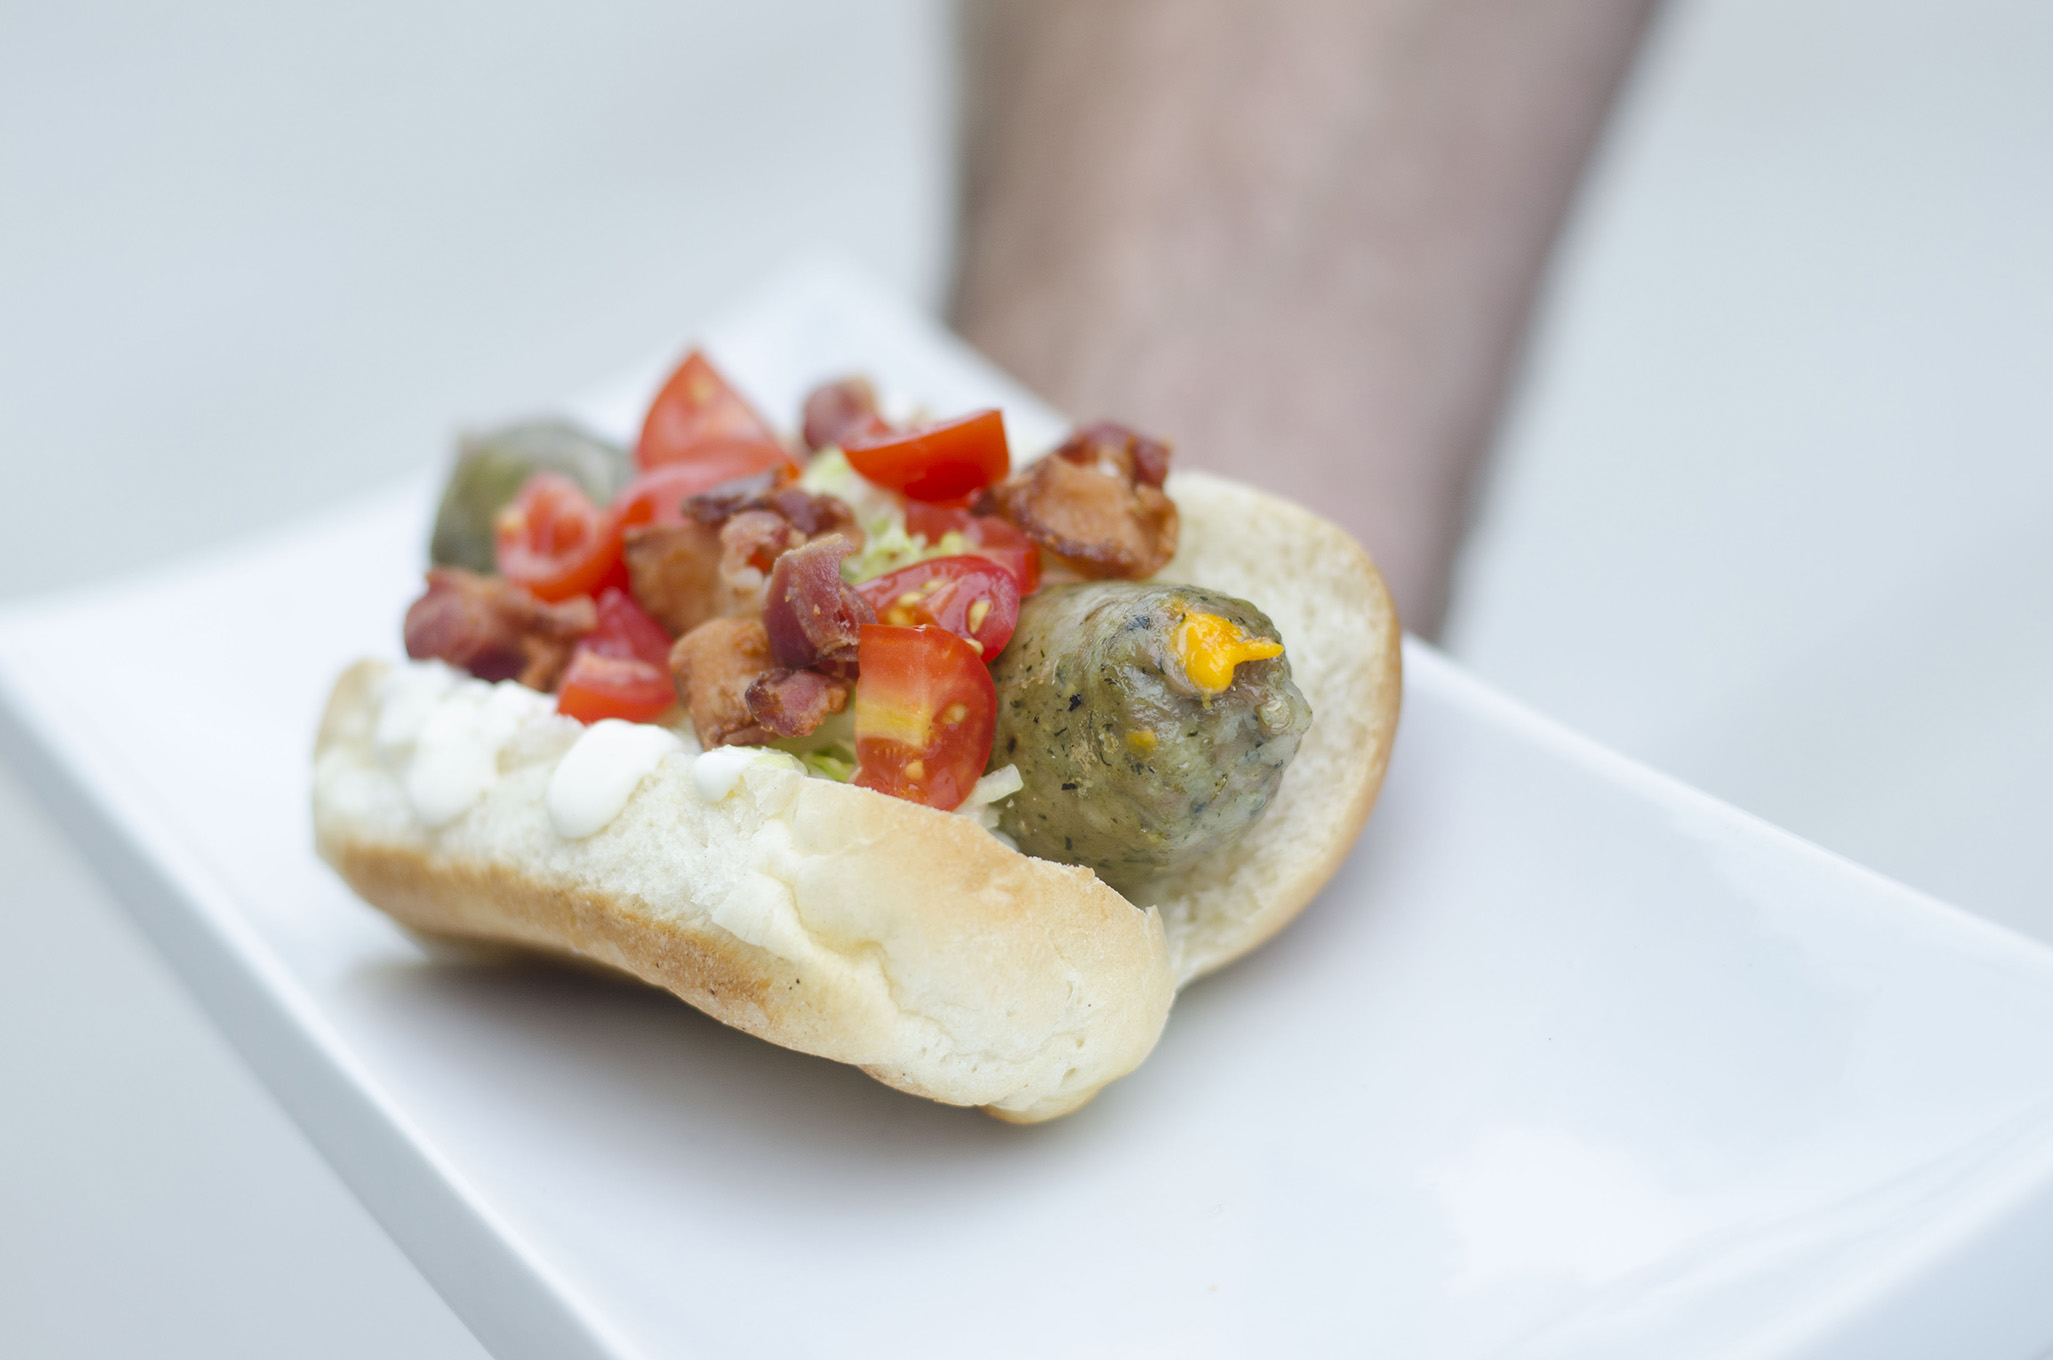 The JBStrong's No Big Dill sausage from Robbie's Gourmet Sausage Co. in Windsor, Ontario.